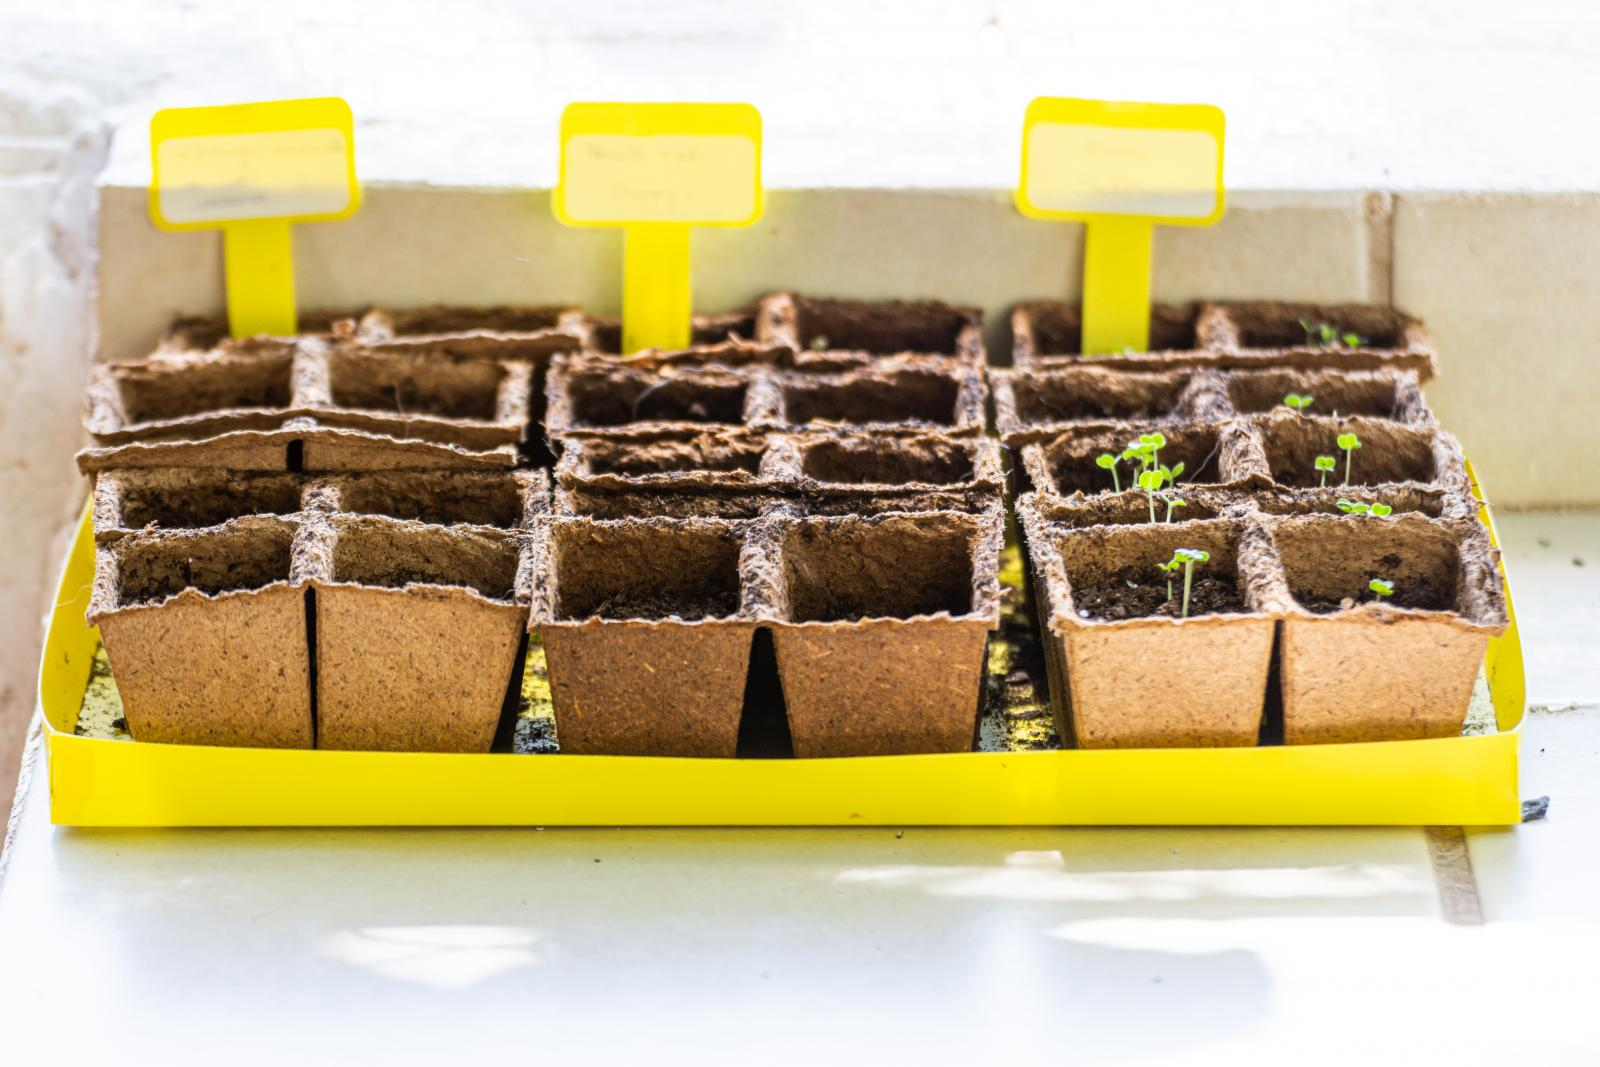 Recycled egg boxes as growing containers